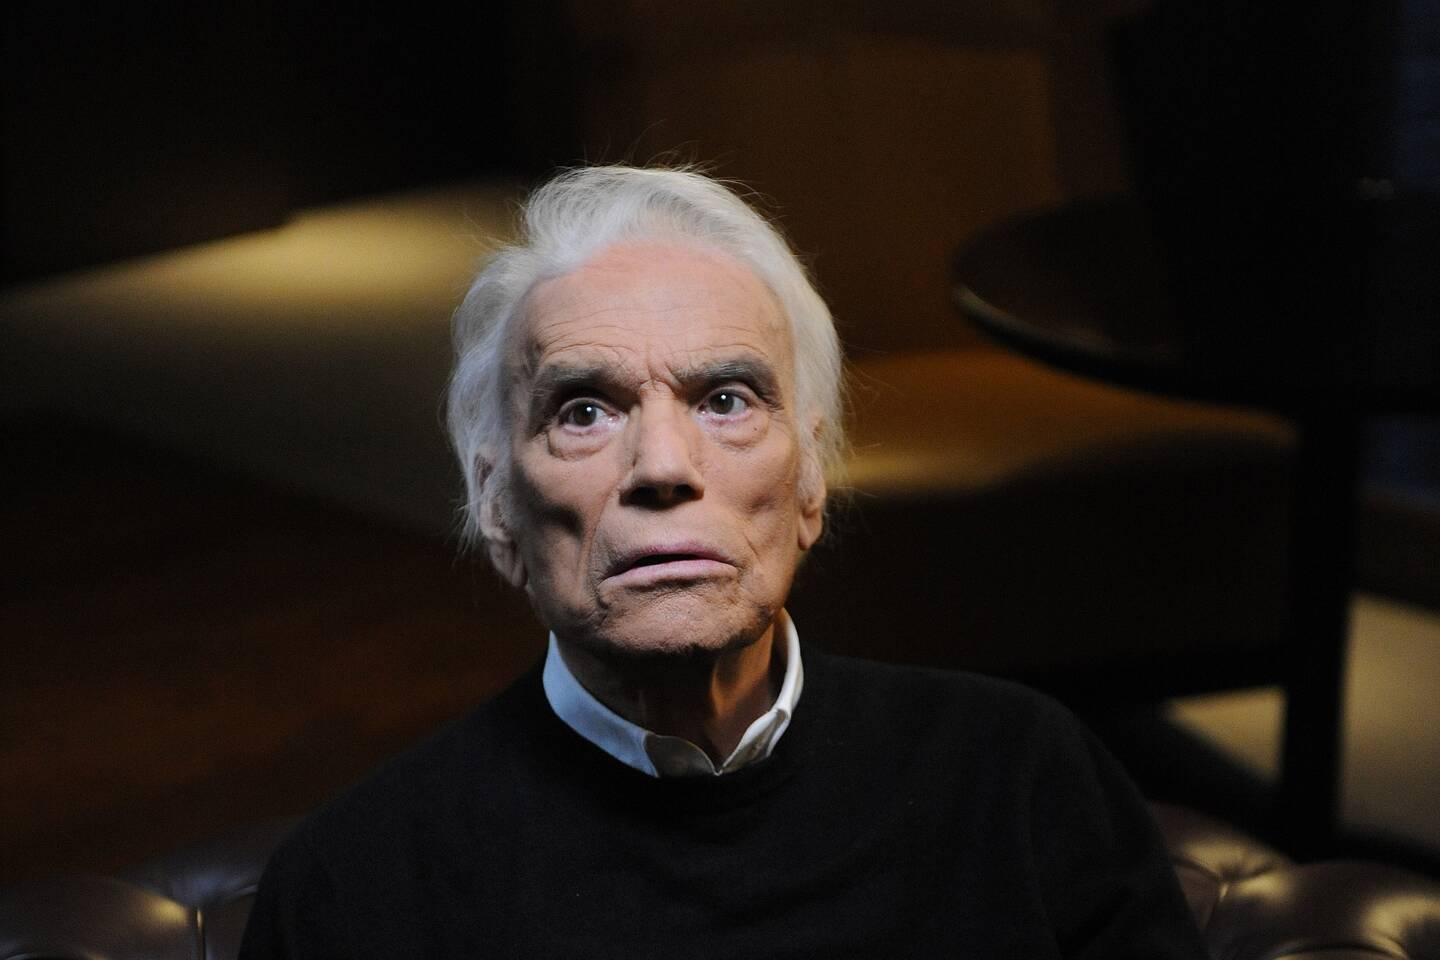 Bernard Tapie gave an interview to Nice-Matin, Var-Matin, France Télévisions and La Provence on Tuesday, June 22.